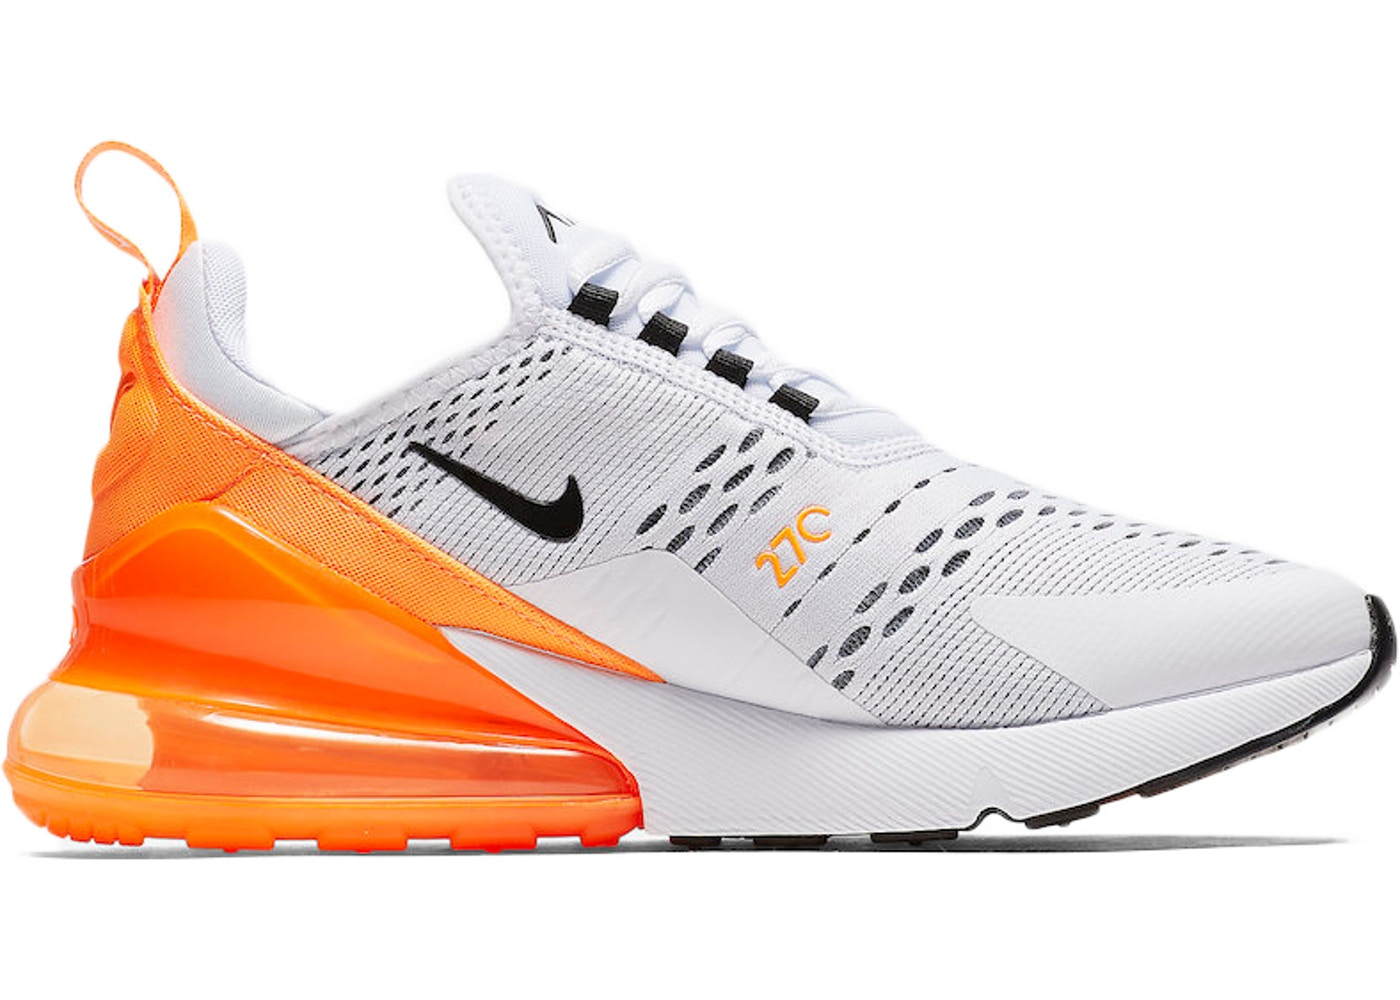 sports shoes 2a45f 213f7 Air Max 270 White Black Orange (W) - AH6789-104